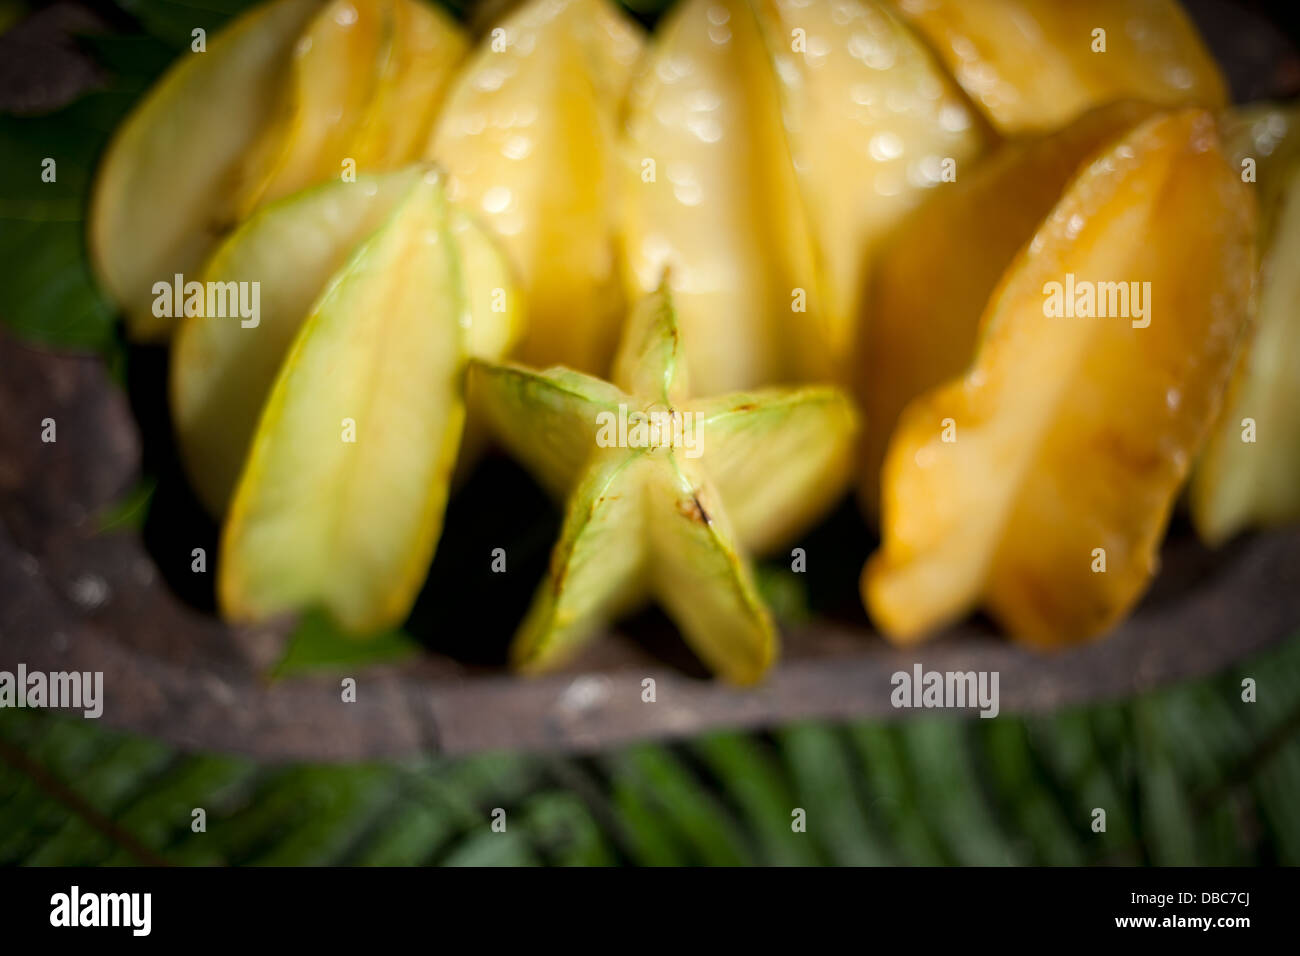 Star Fruit or Carambola in wooden bowl for sale at an organic fruit market in Aitutaki island, Cook Island - Stock Image